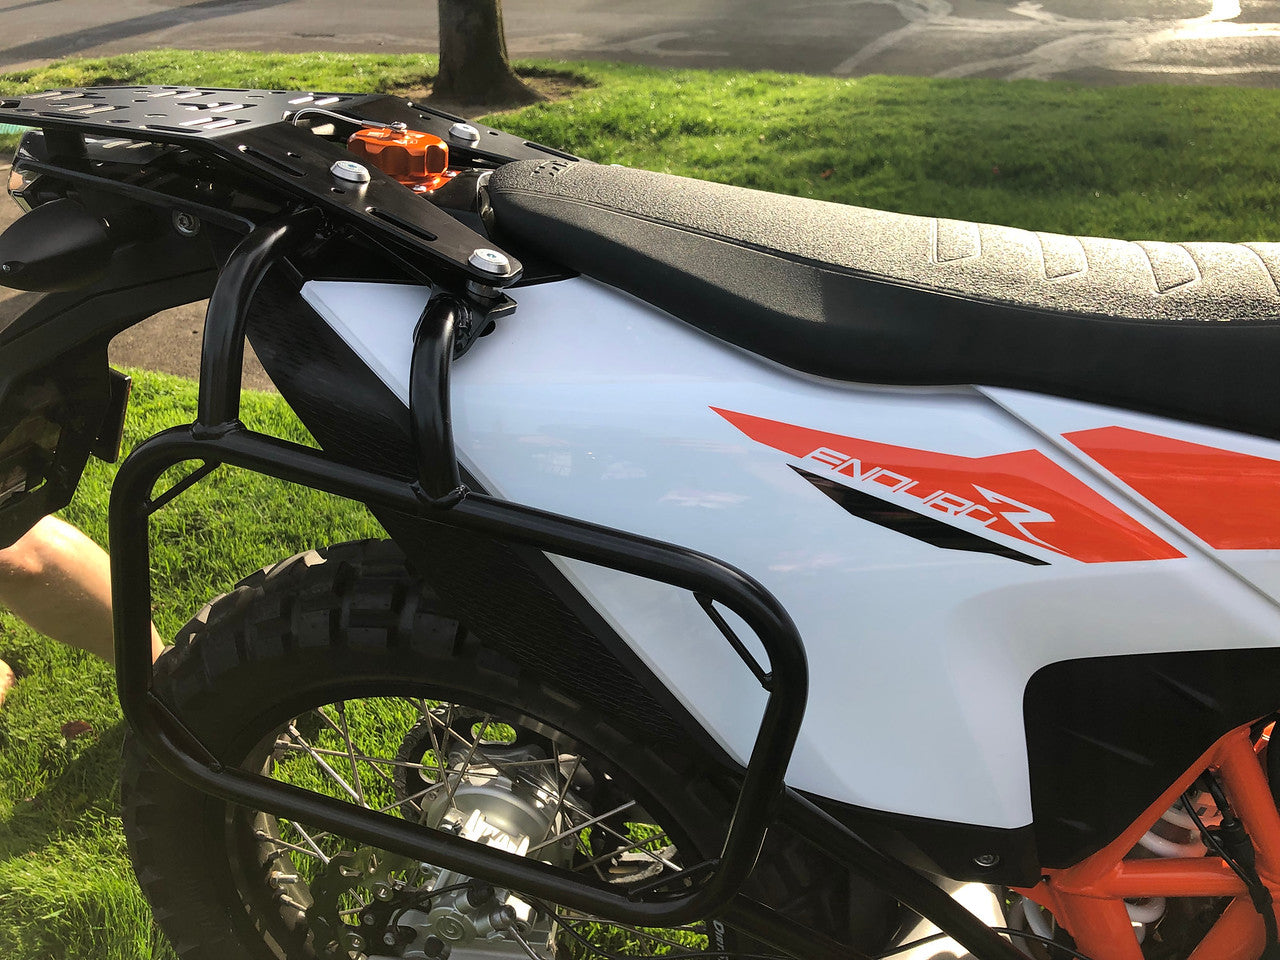 Top luggage rack and pannier racks combo for 2019 KTM 690 Enduro